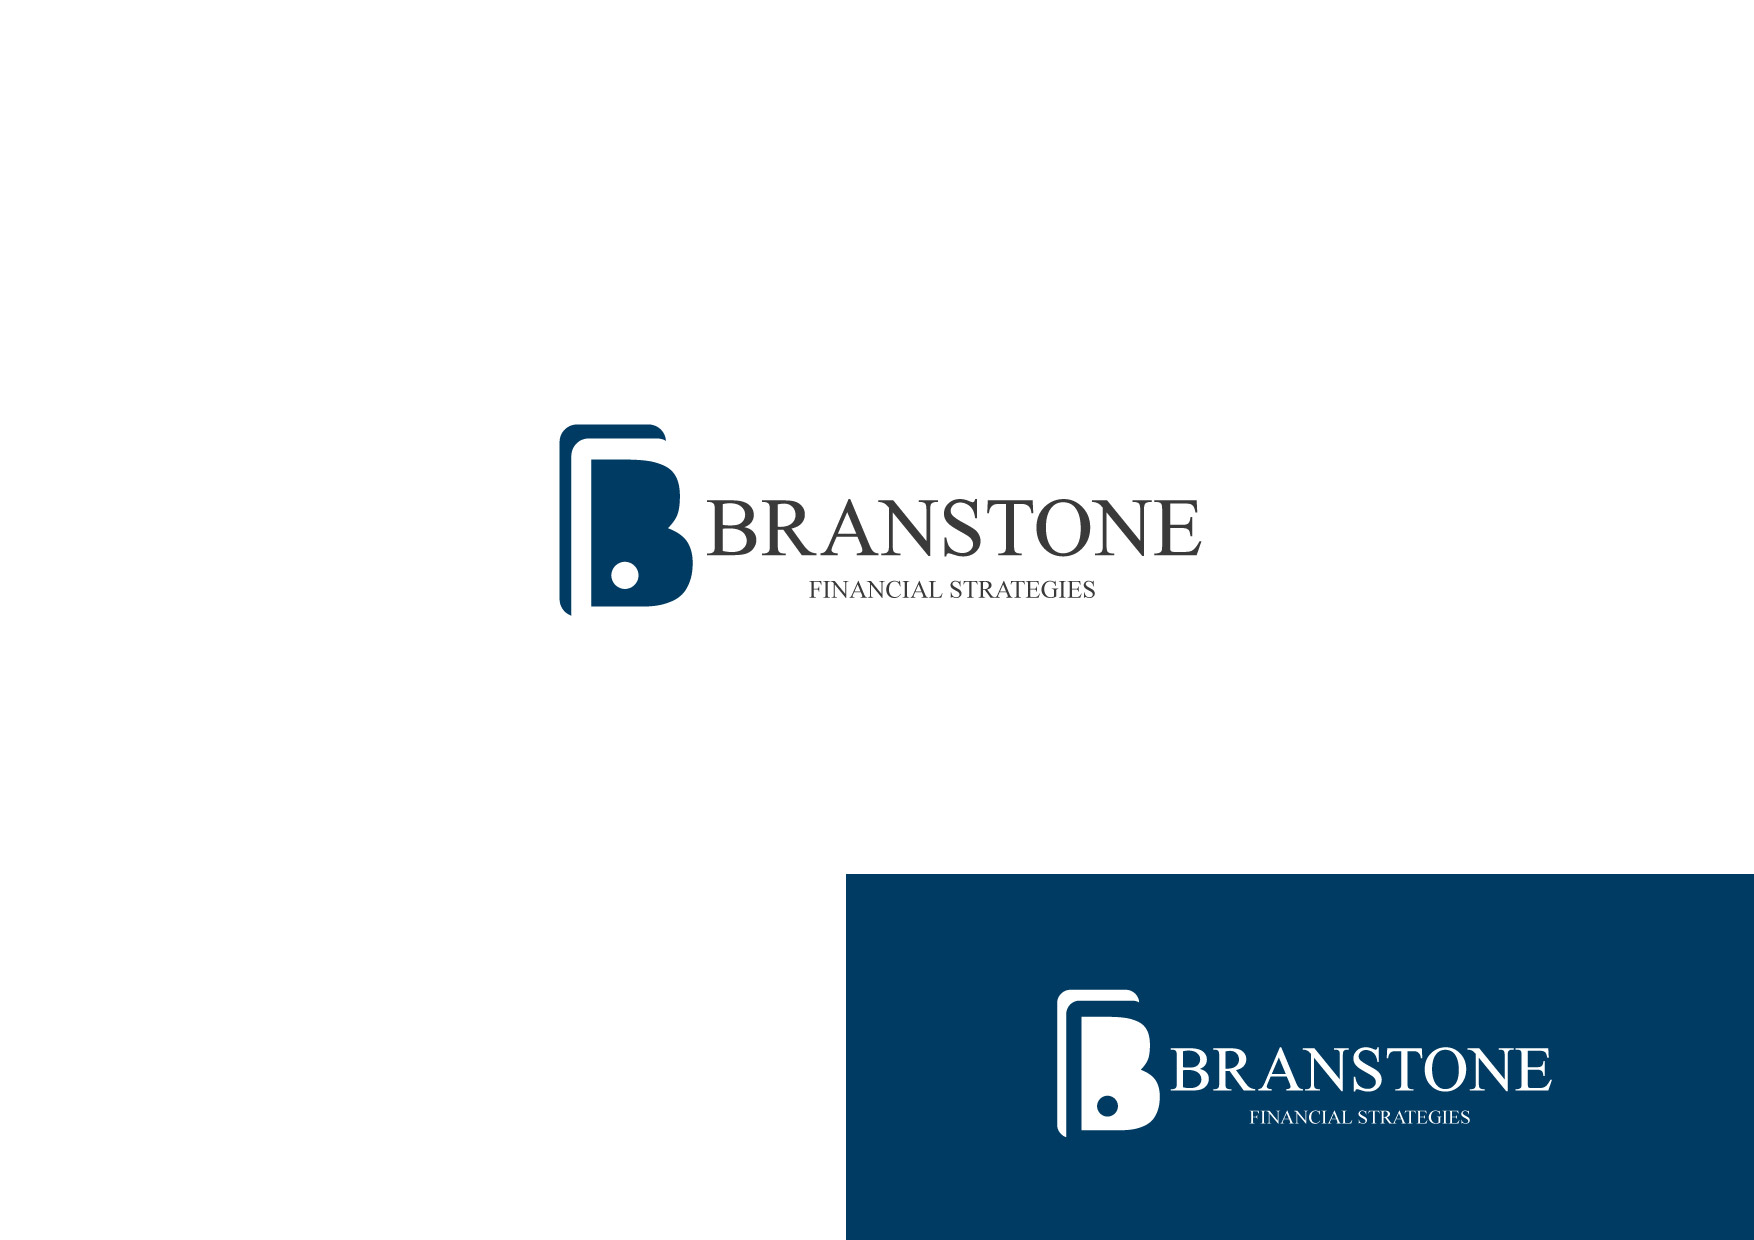 Logo Design by Osi Indra - Entry No. 36 in the Logo Design Contest Inspiring Logo Design for Branstone Financial Strategies.